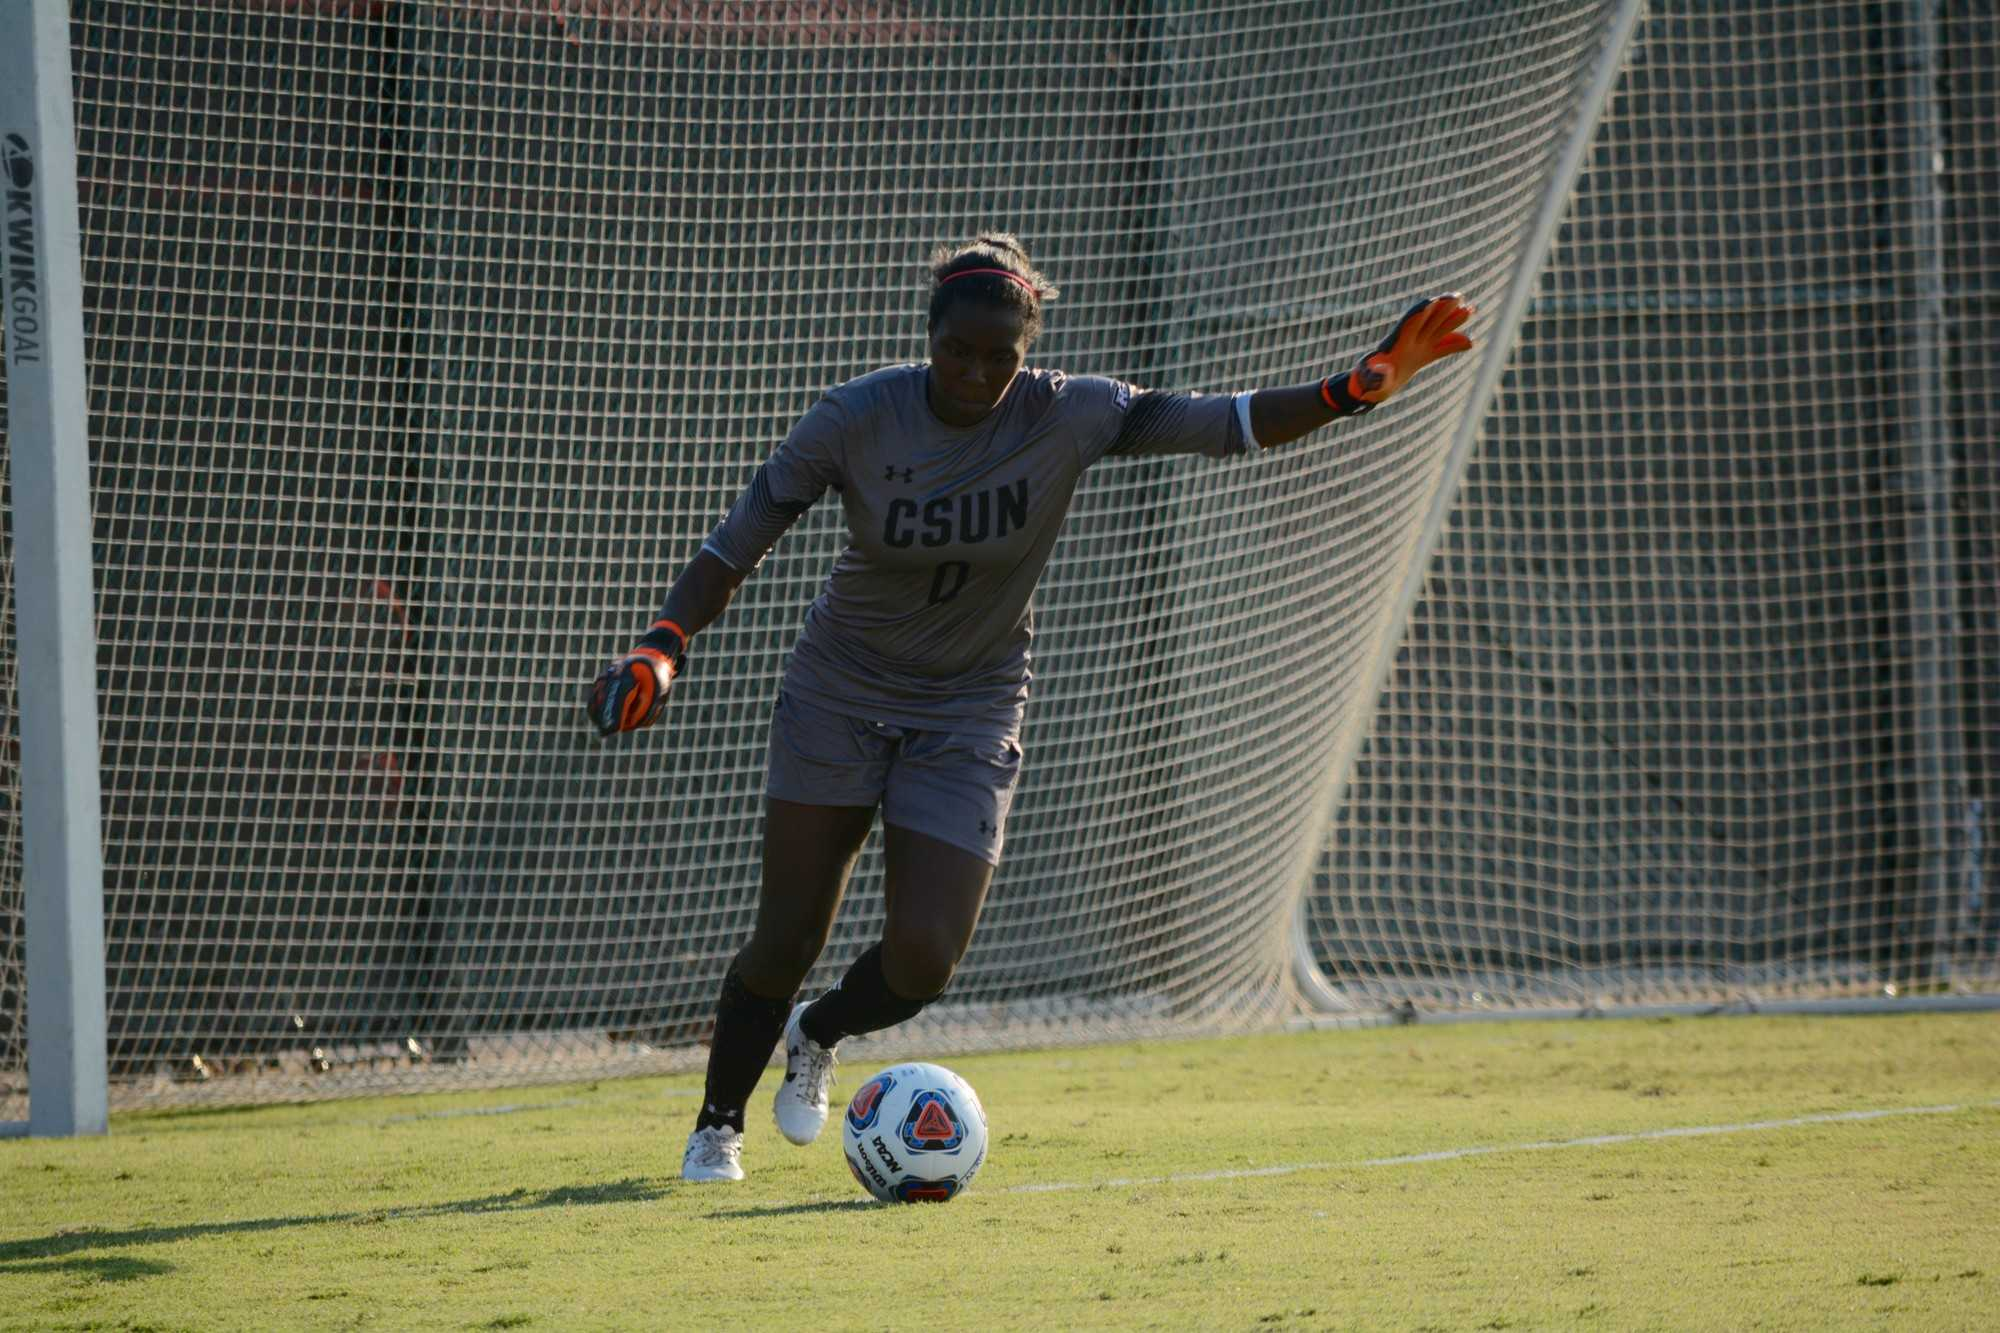 CSUN goalie kicks the ball back out onto the field